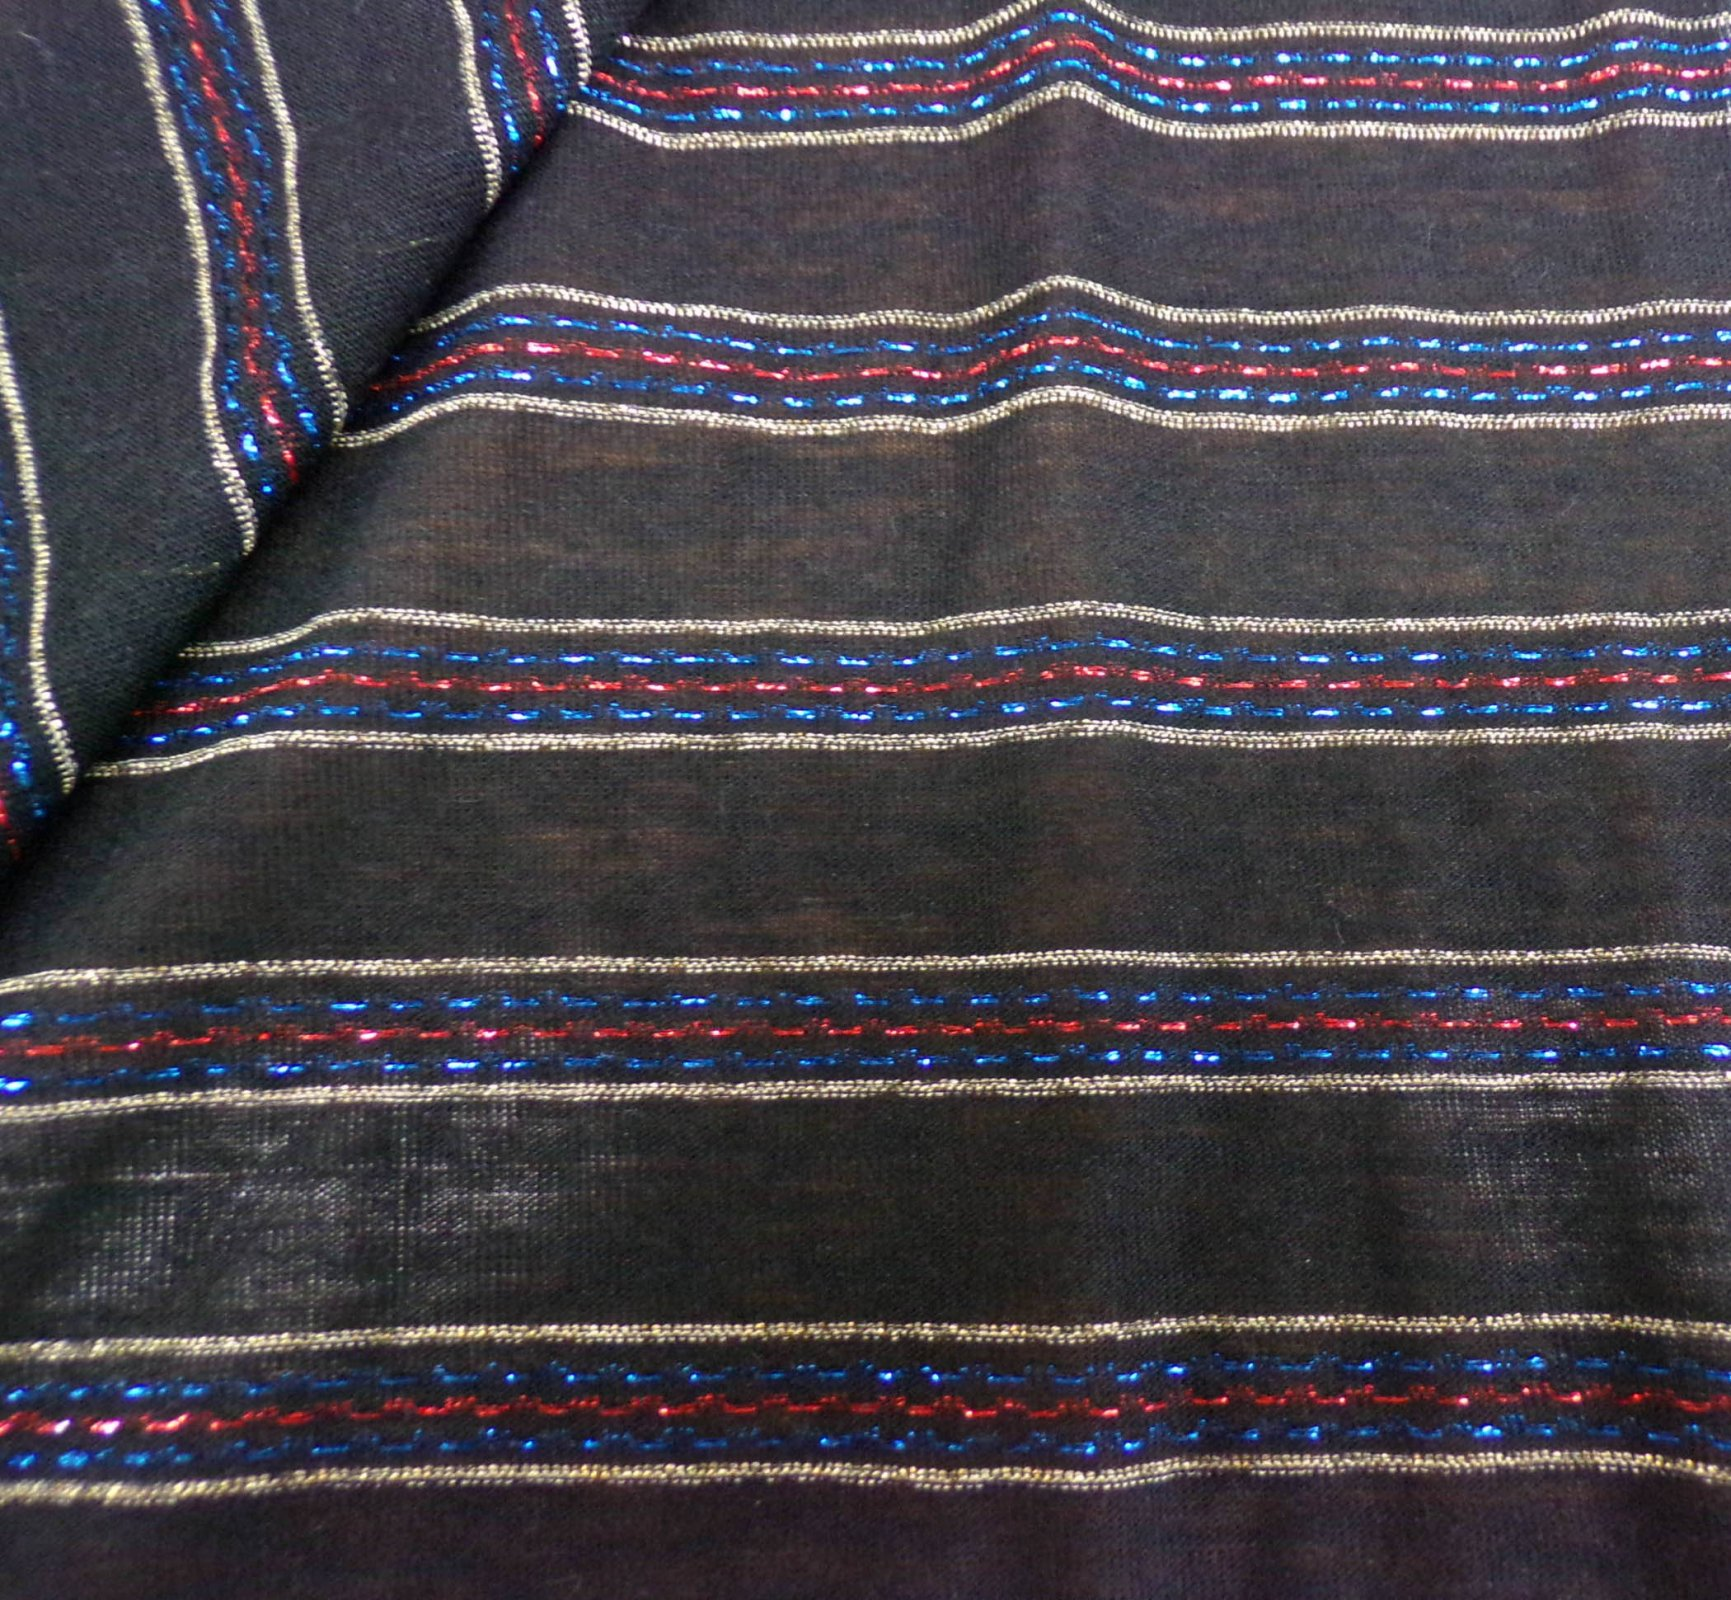 Black Sweater Knit with Metallic Red & Blue Stripes